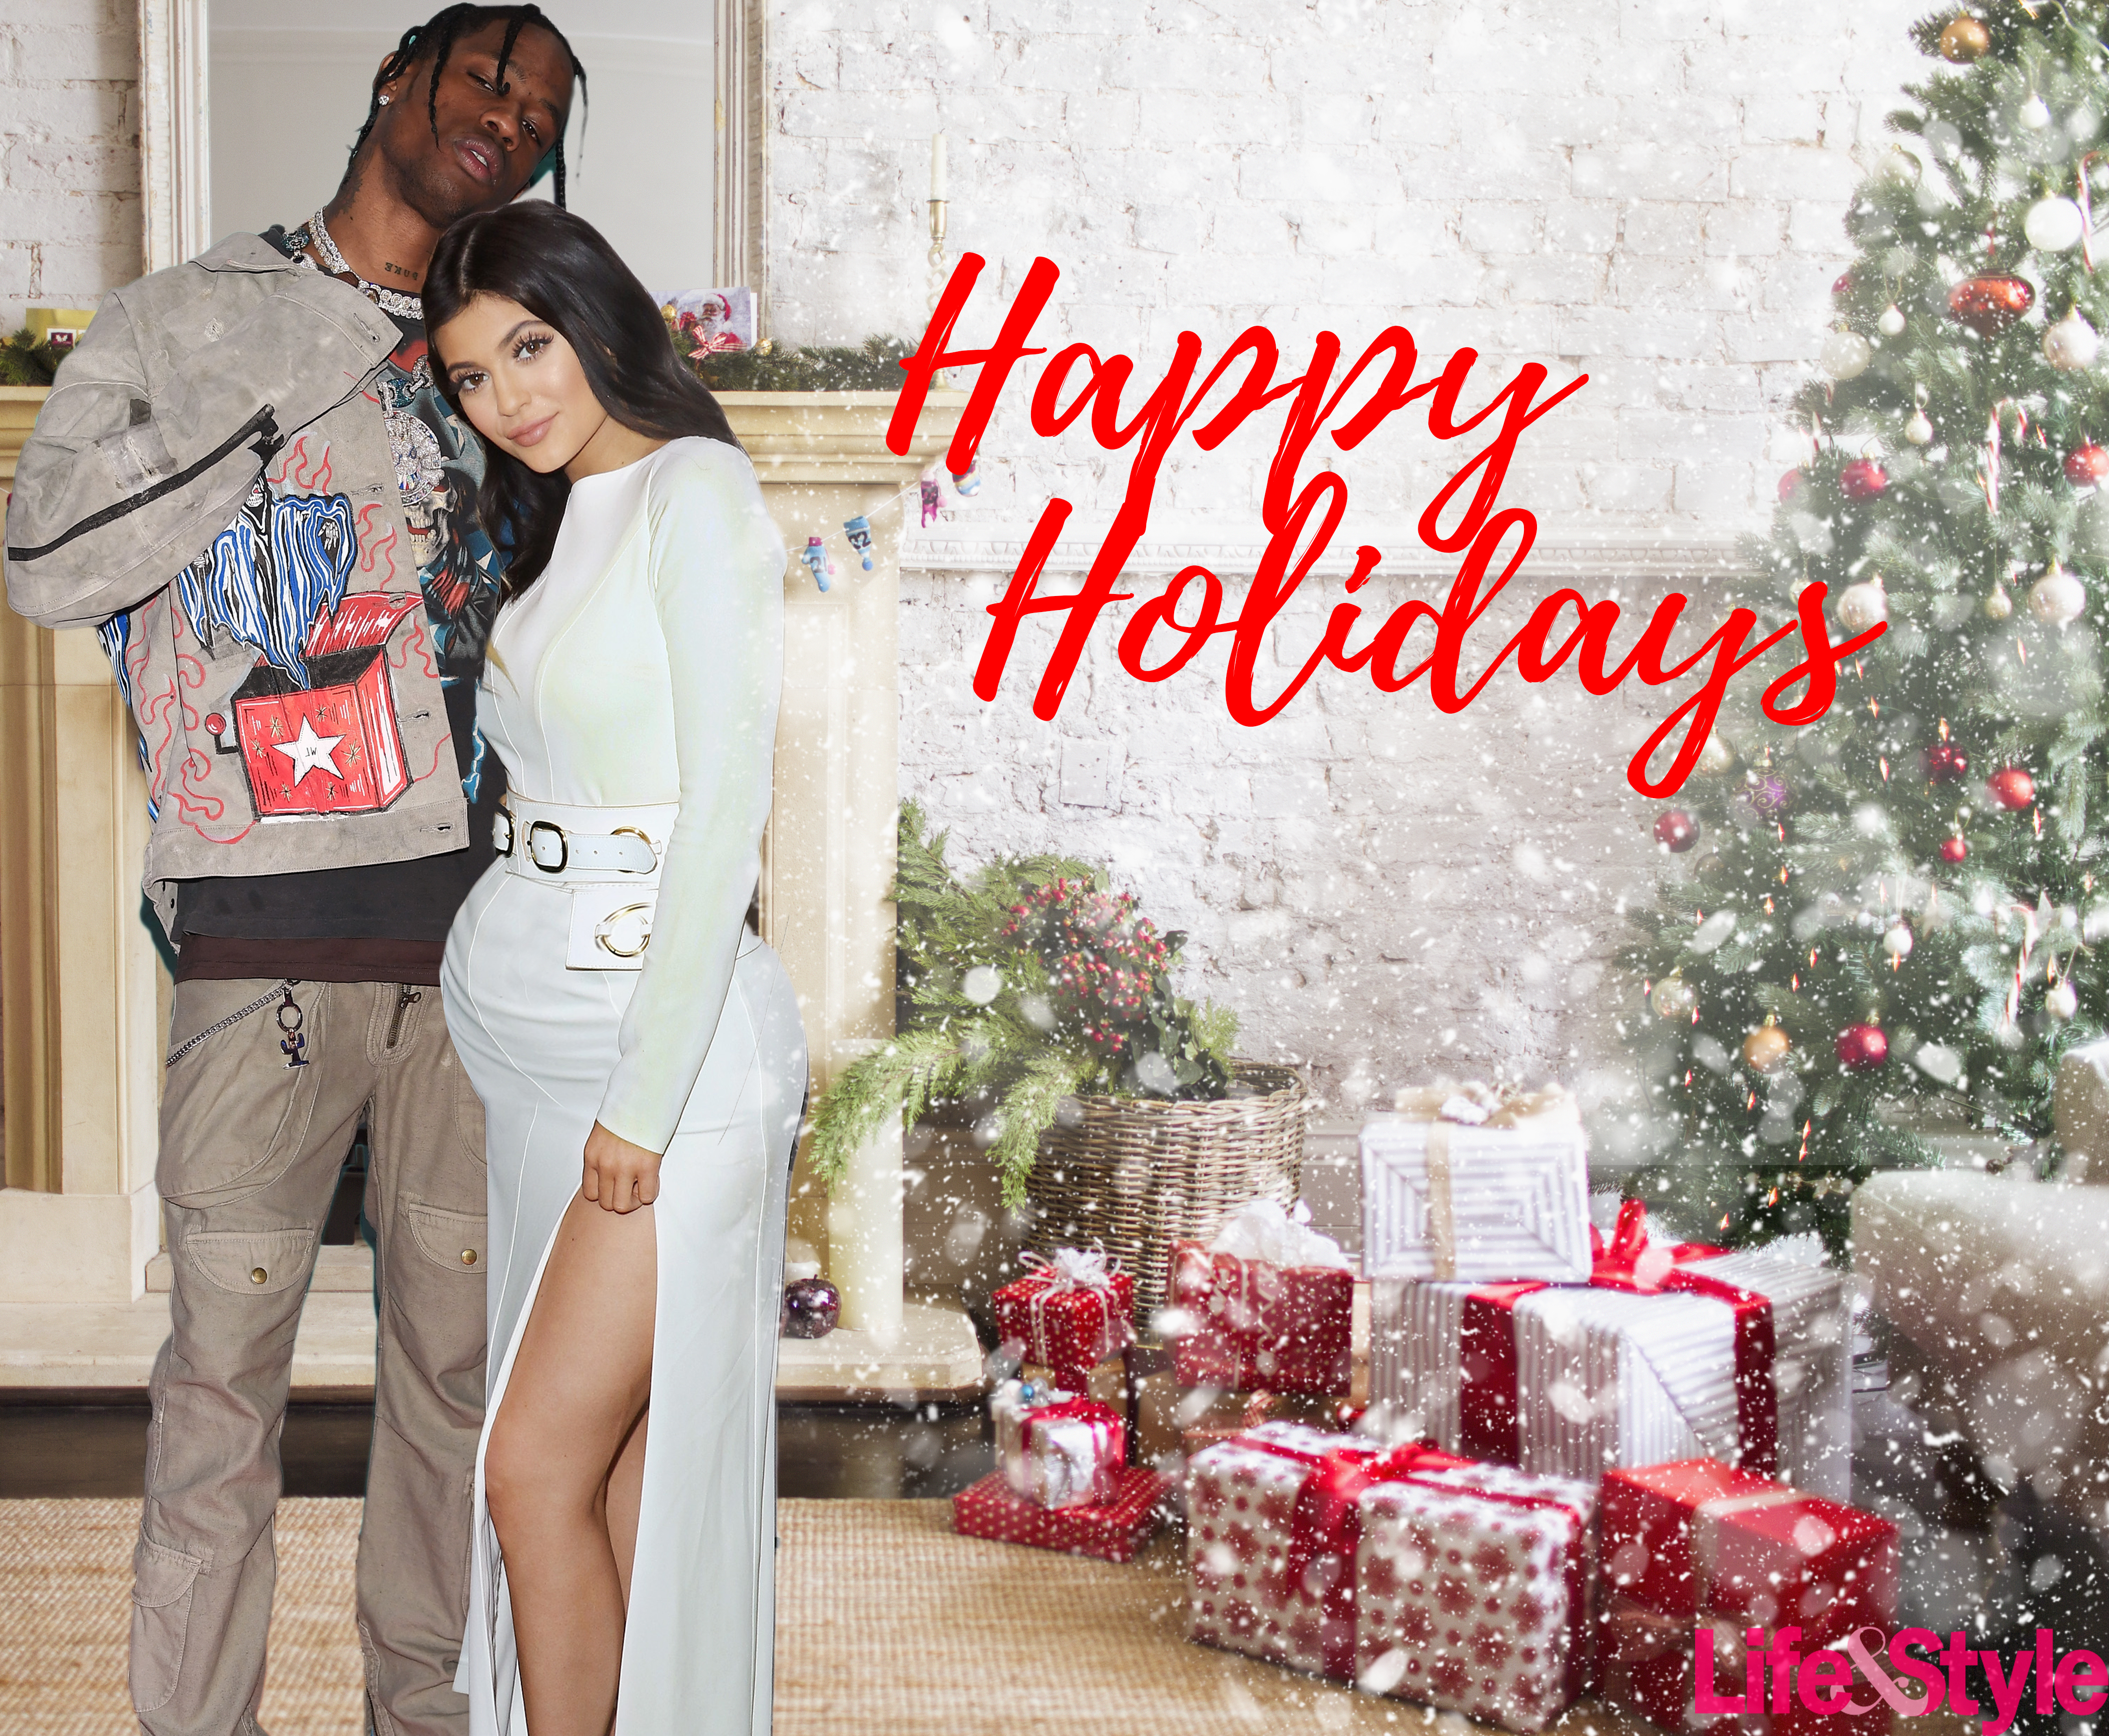 Kardashians Christmas Cards See Our 2017 Predictions